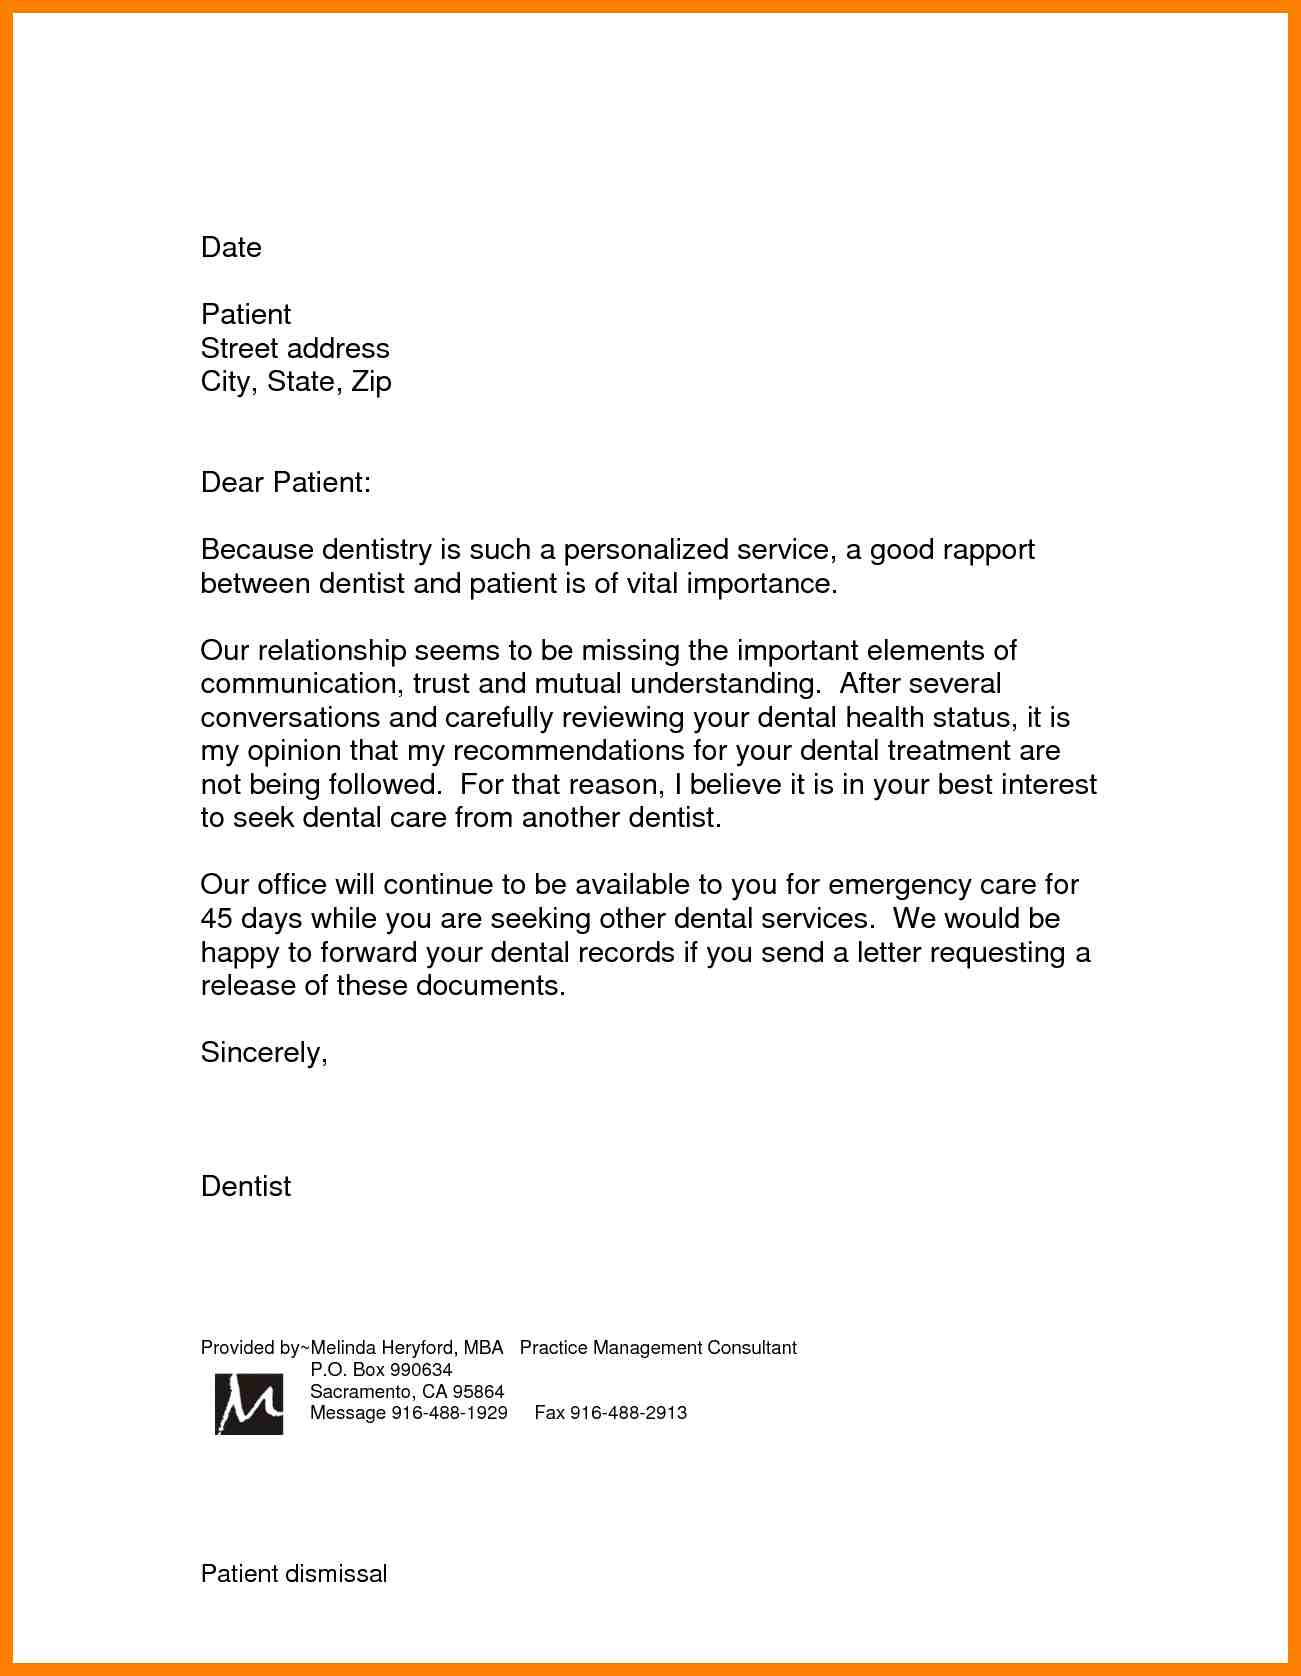 patient dismissal letter template Collection-patient dismissal letter for behavior template 16-n